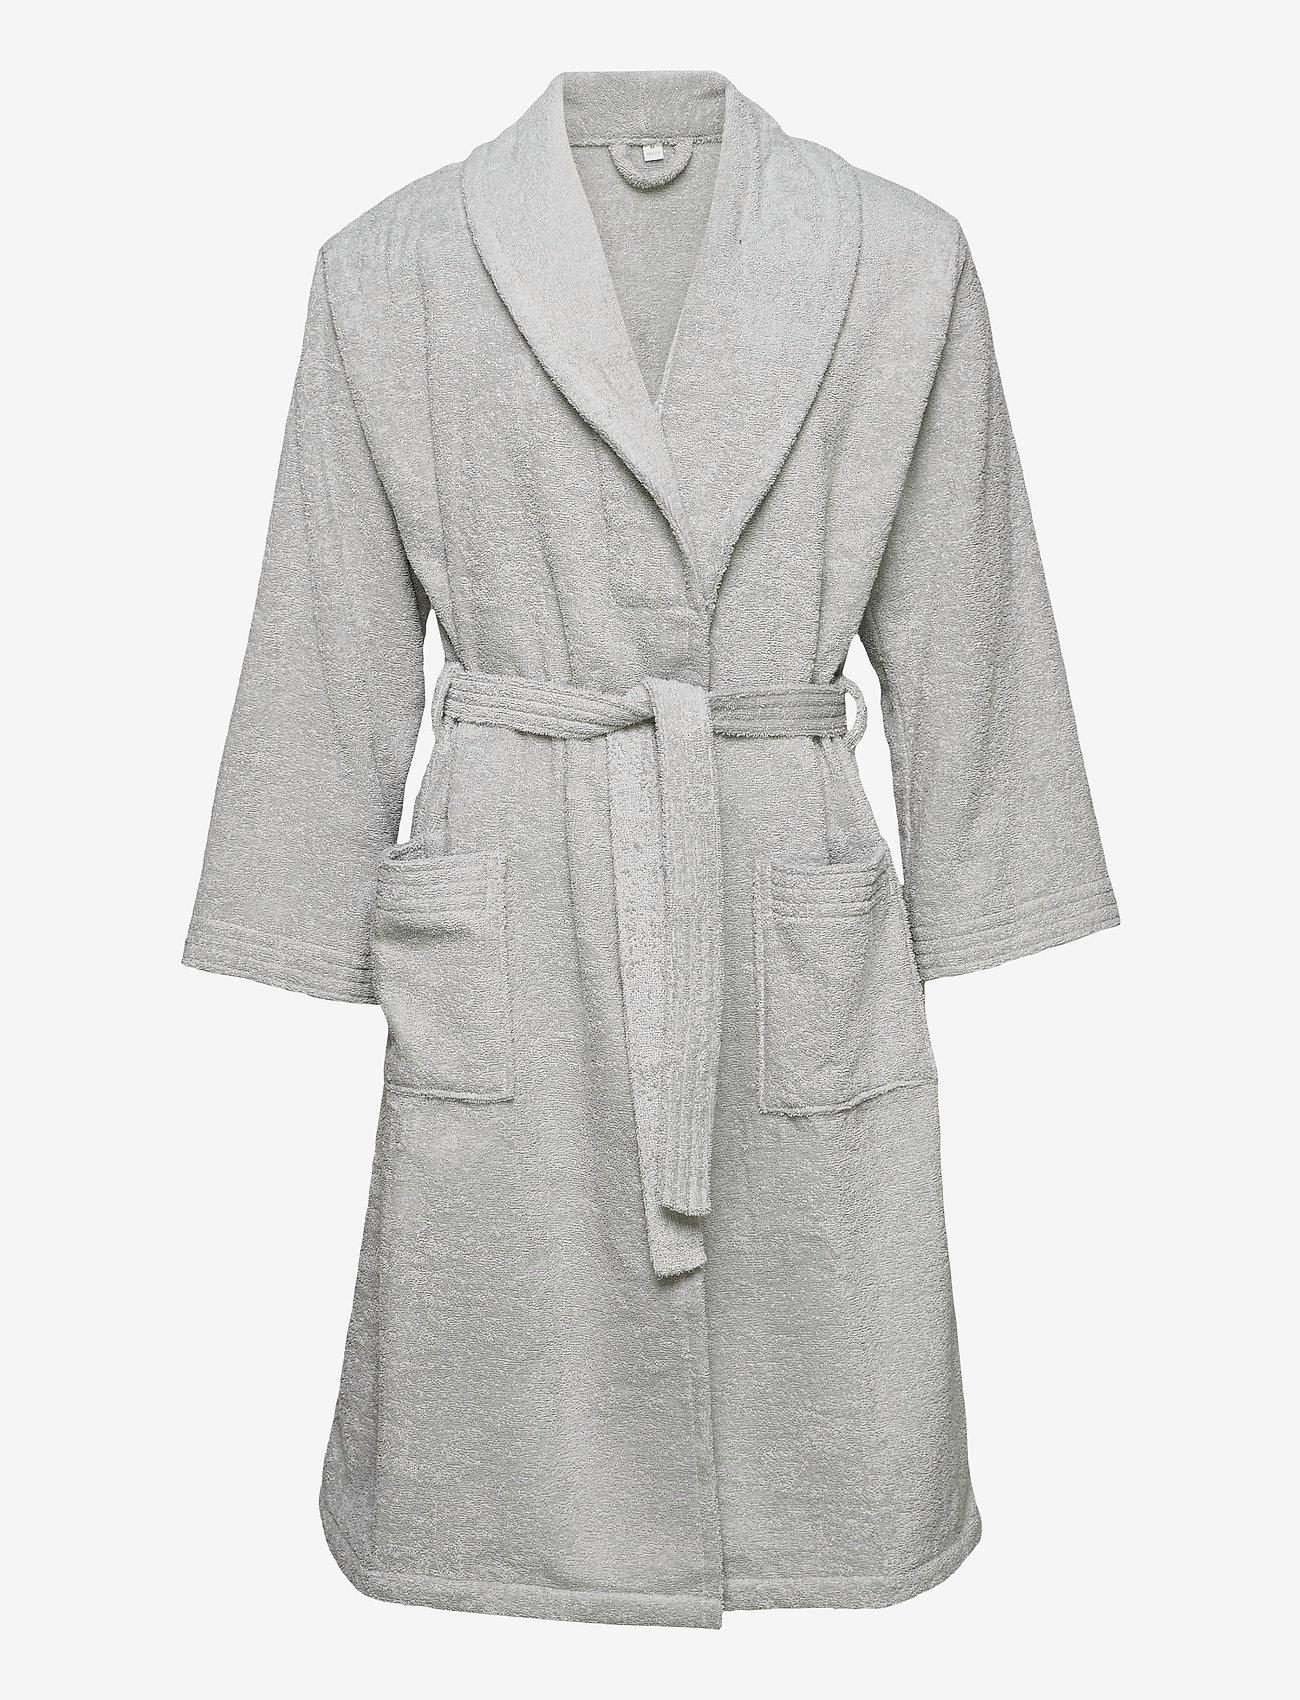 GANT - ORGANIC TERRY BATHROBE - vaatetus - light grey - 0